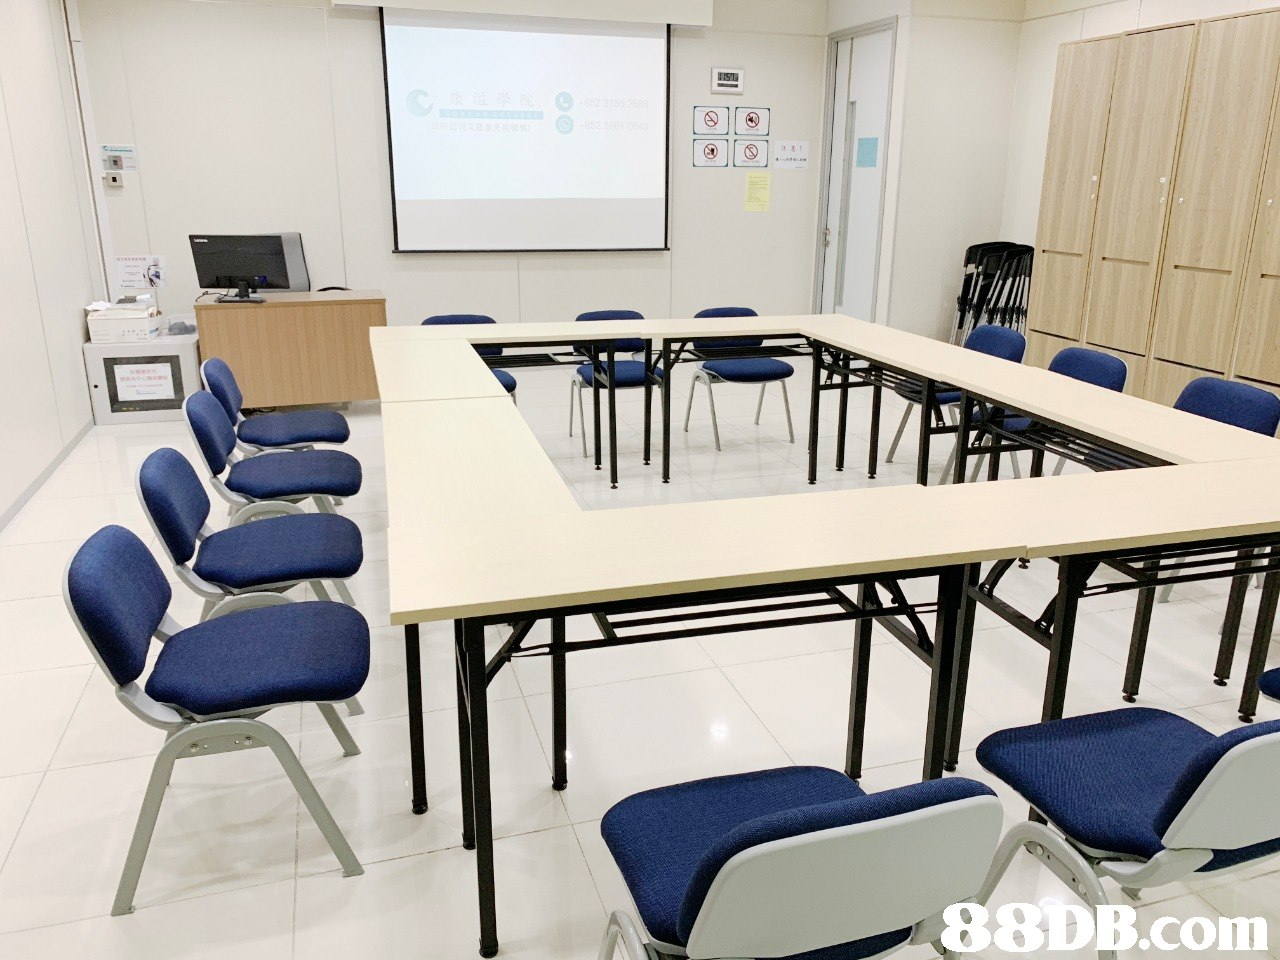 Room,Furniture,Conference hall,Table,Classroom